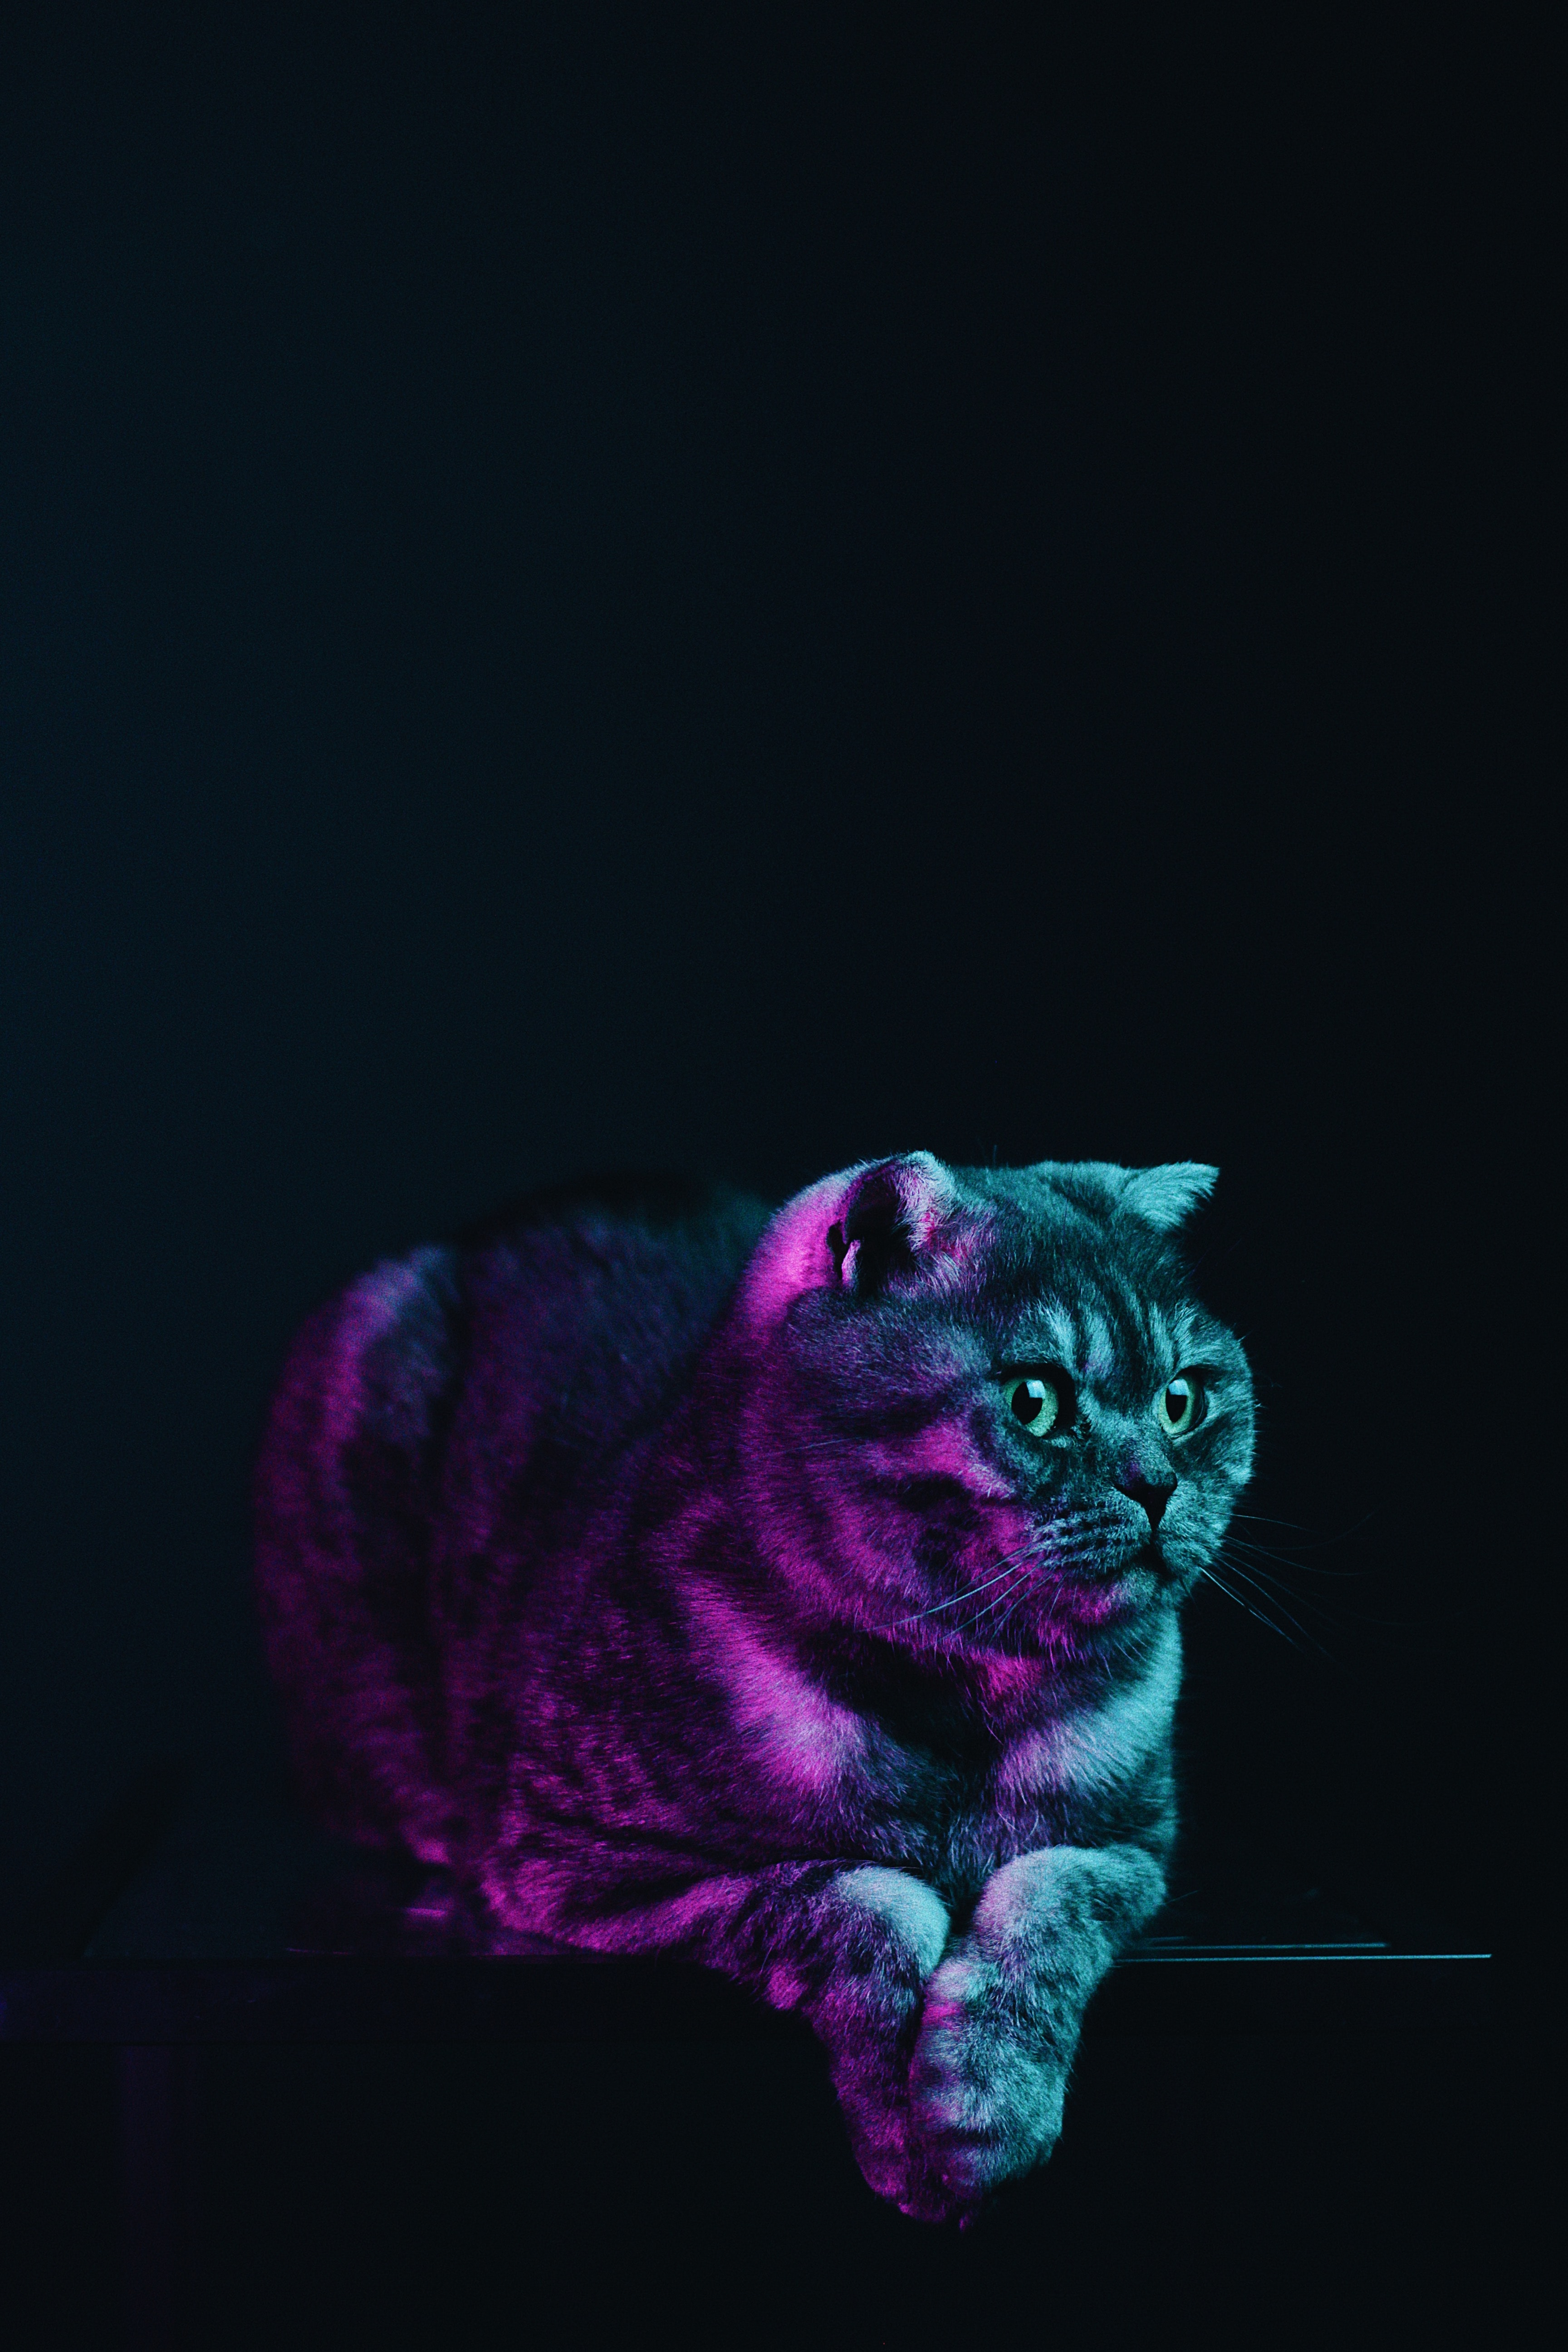 107563 download wallpaper Animals, Scottish Fold, Cat, Grey, Pet, Neon screensavers and pictures for free